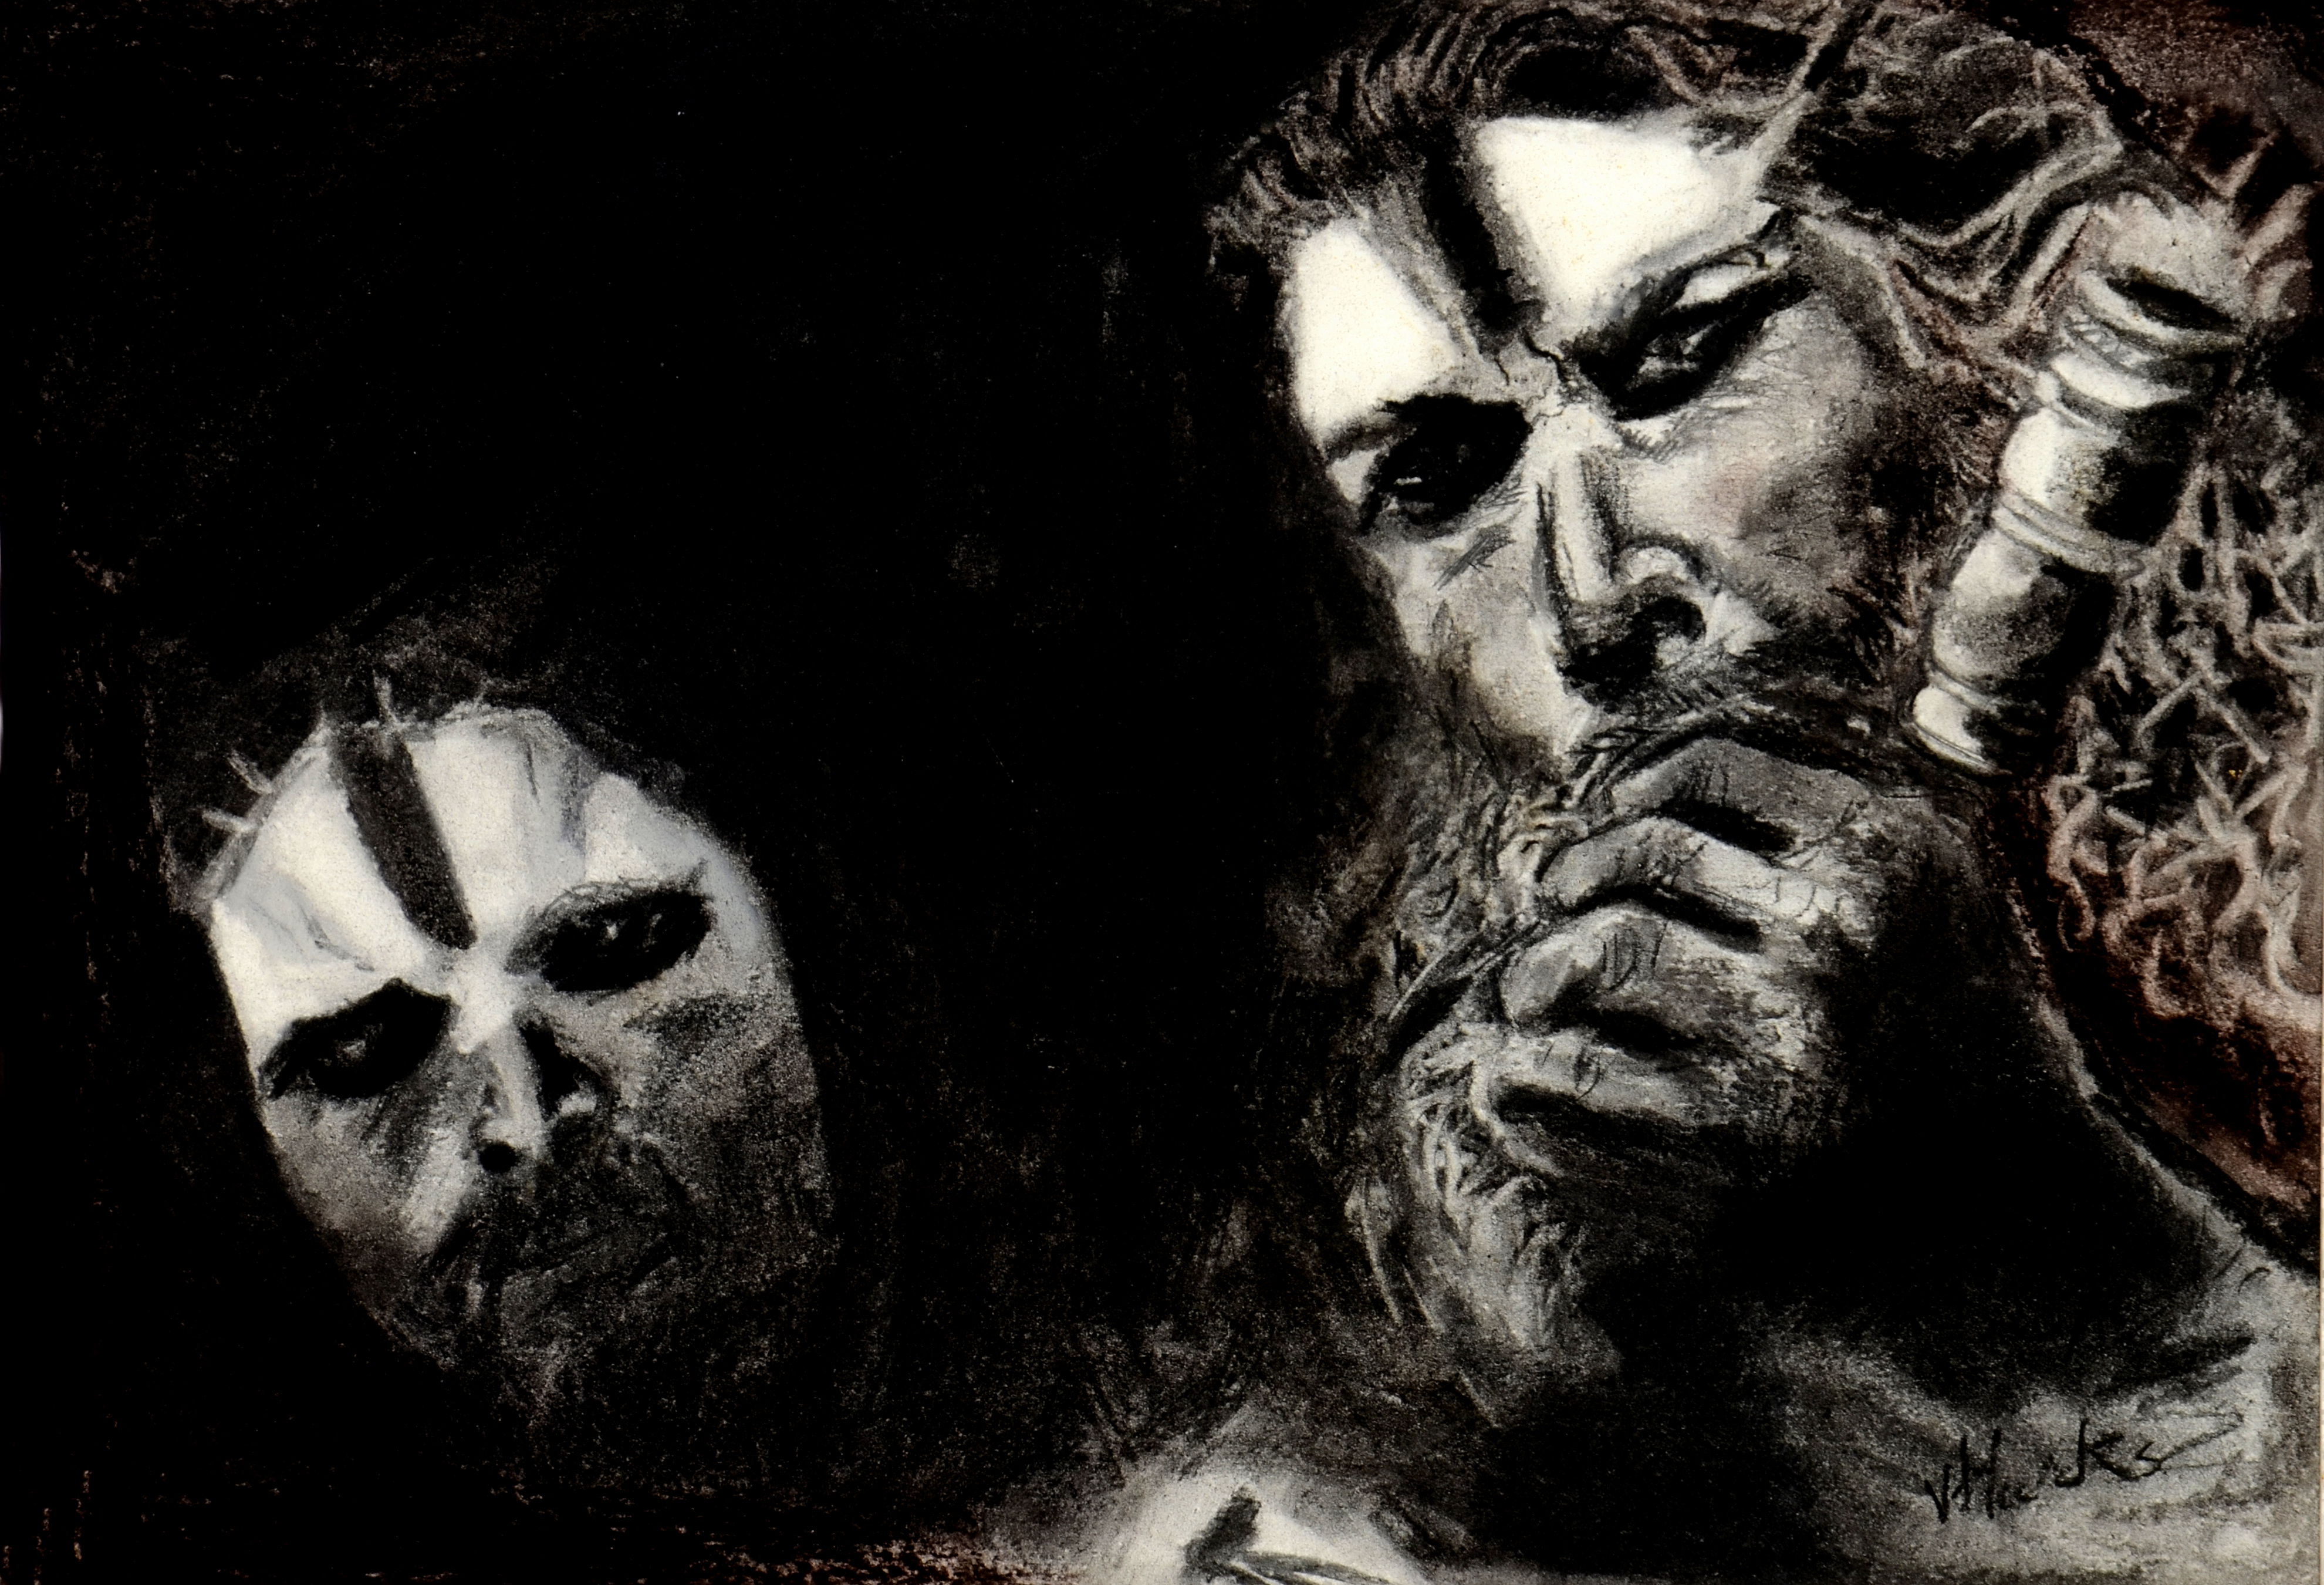 Buy Painting Aghori Artwork No 7679 by Indian Artist Alexius R